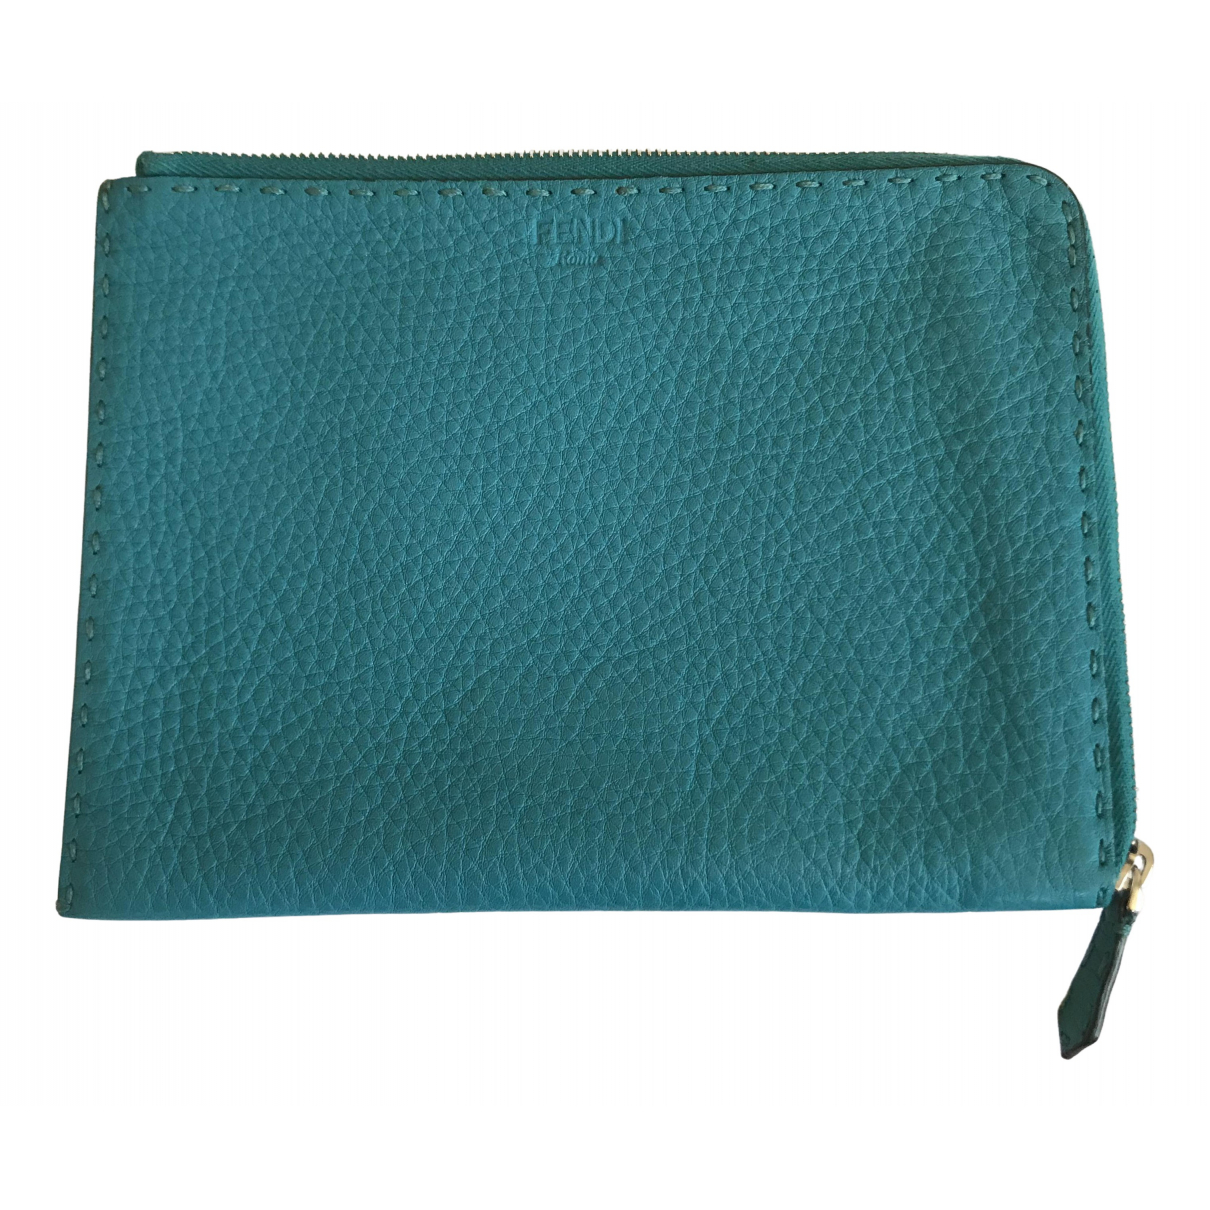 Fendi \N Turquoise Leather Clutch bag for Women \N